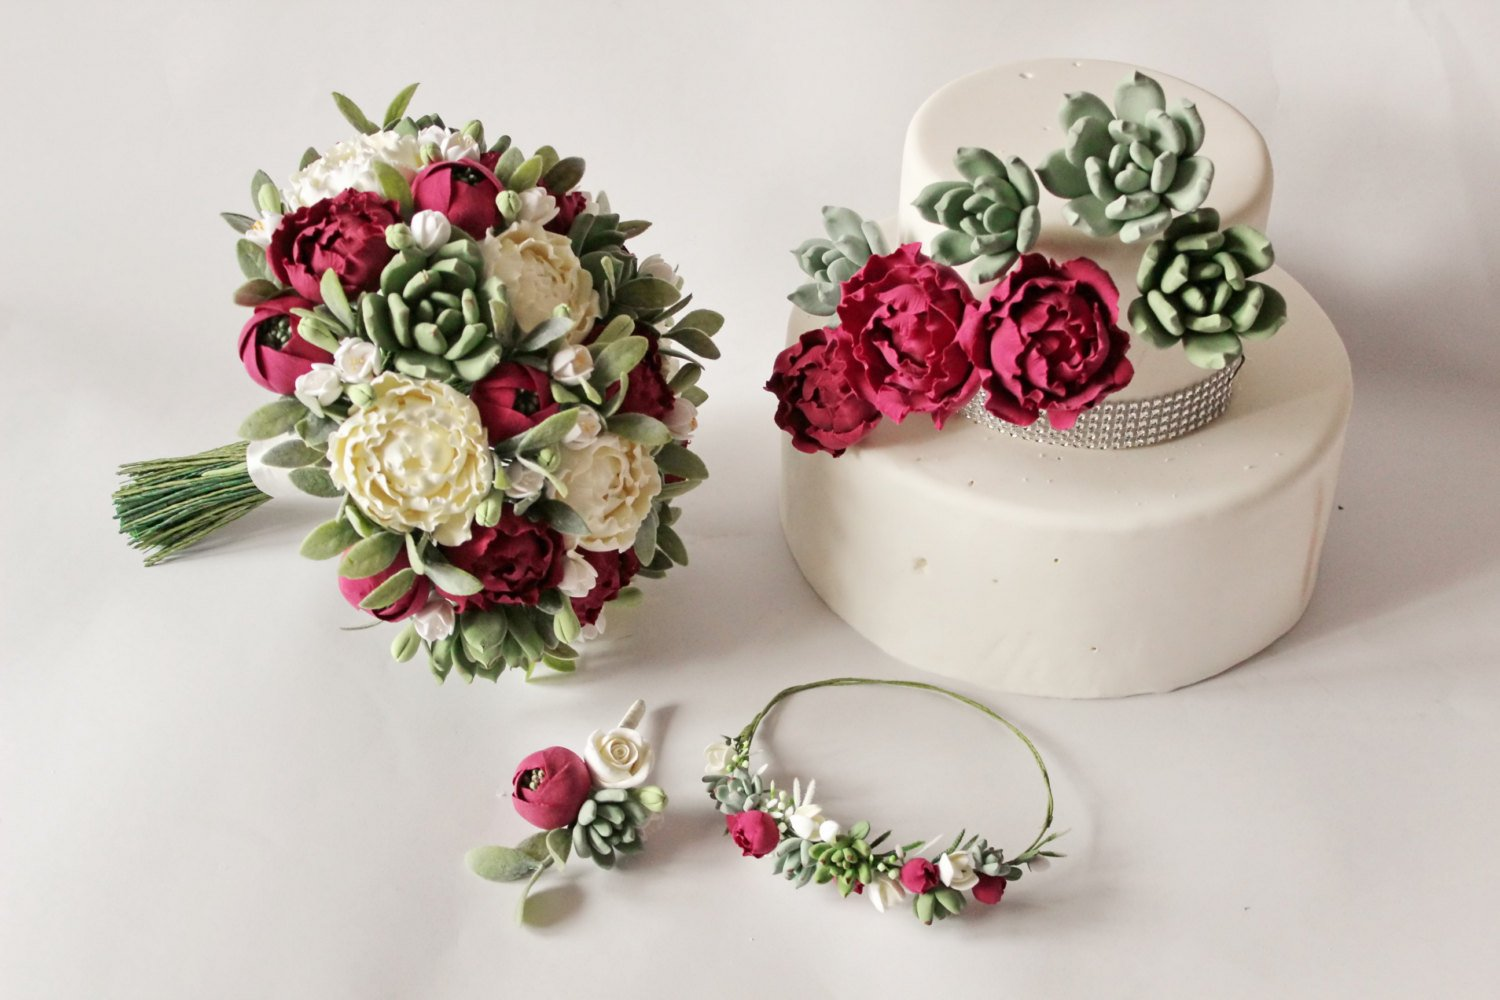 Where to Buy Affordable Wedding Flower Packages Online